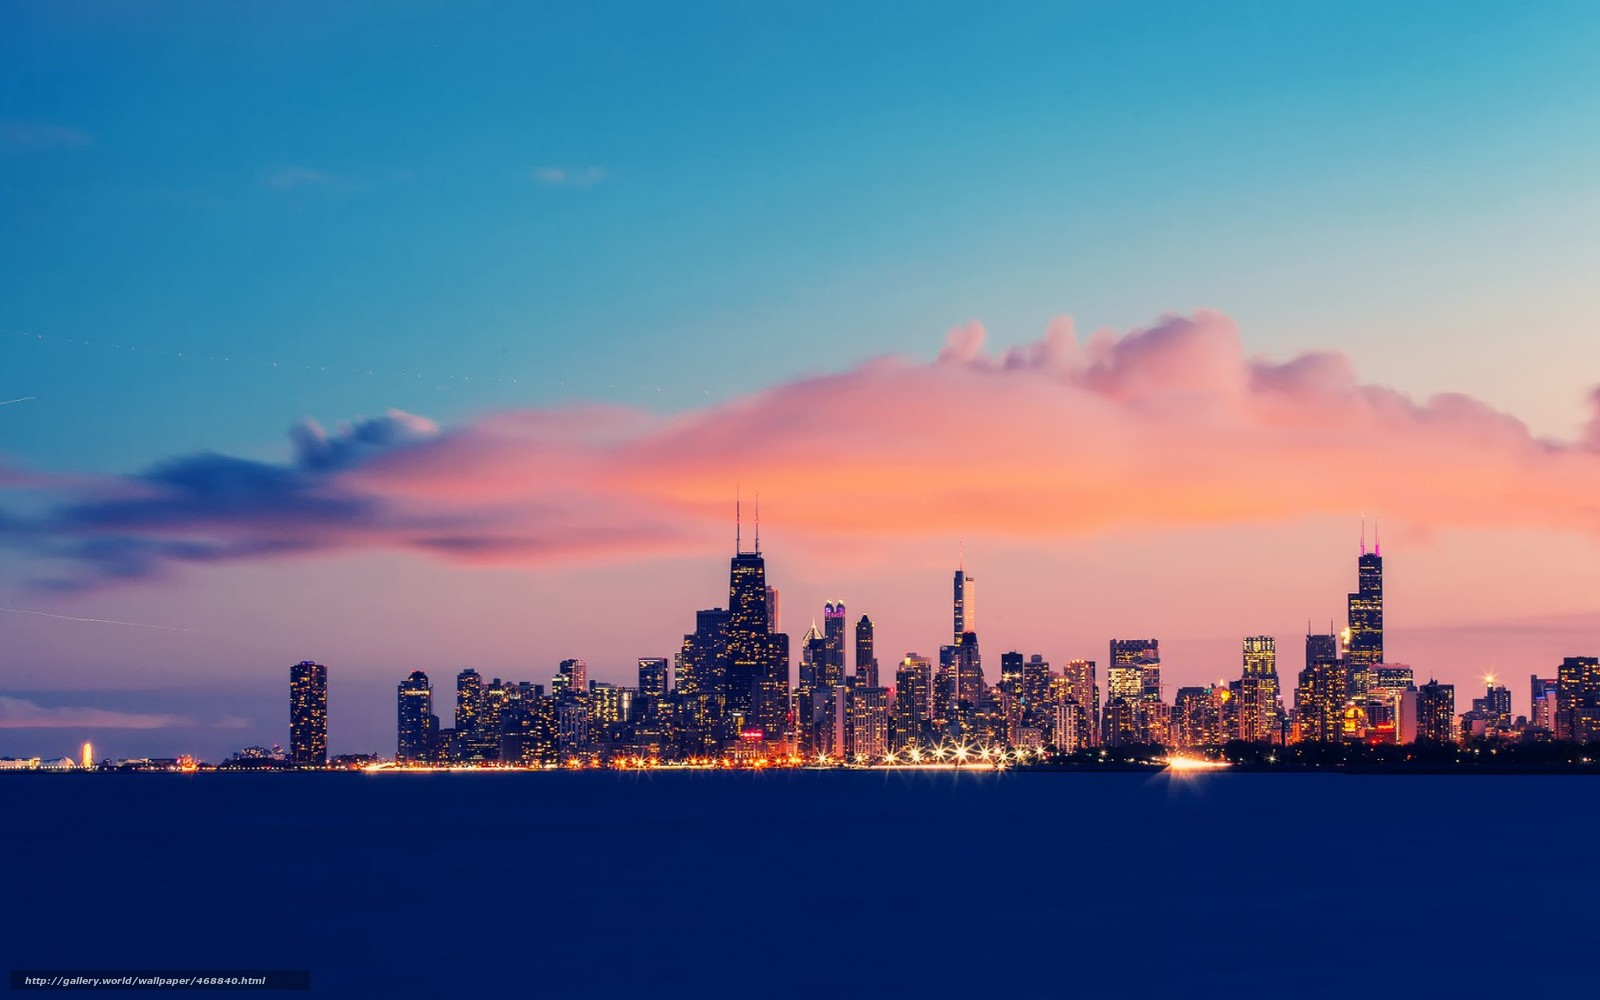 download wallpaper city chicago lake michigan exposure